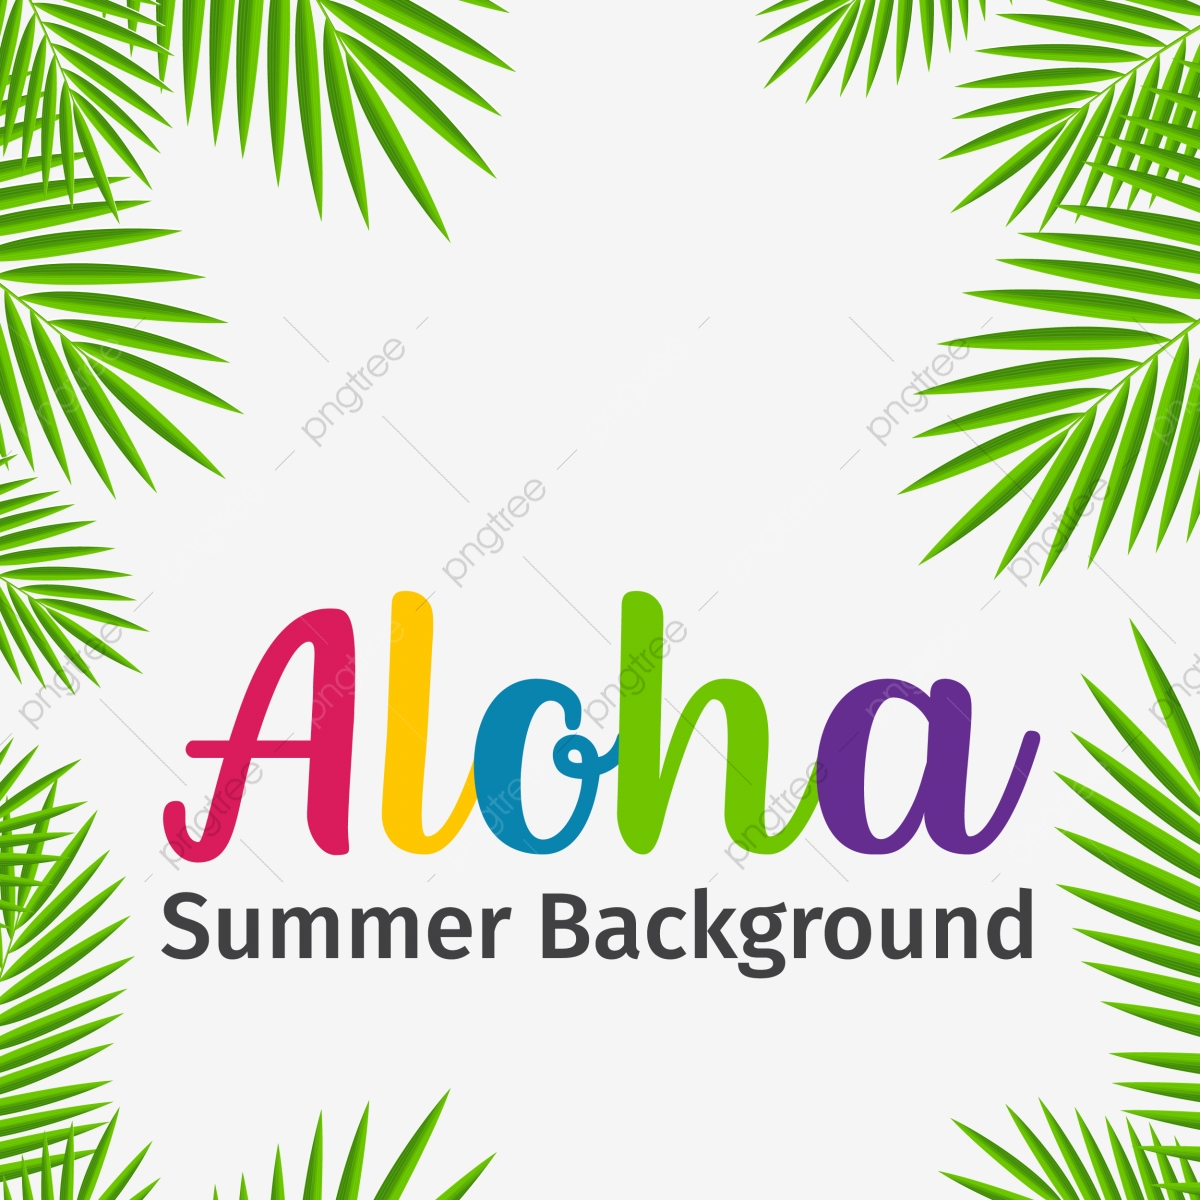 Aloha Tropical Green Leaf Summer Background, Tropical, Palm